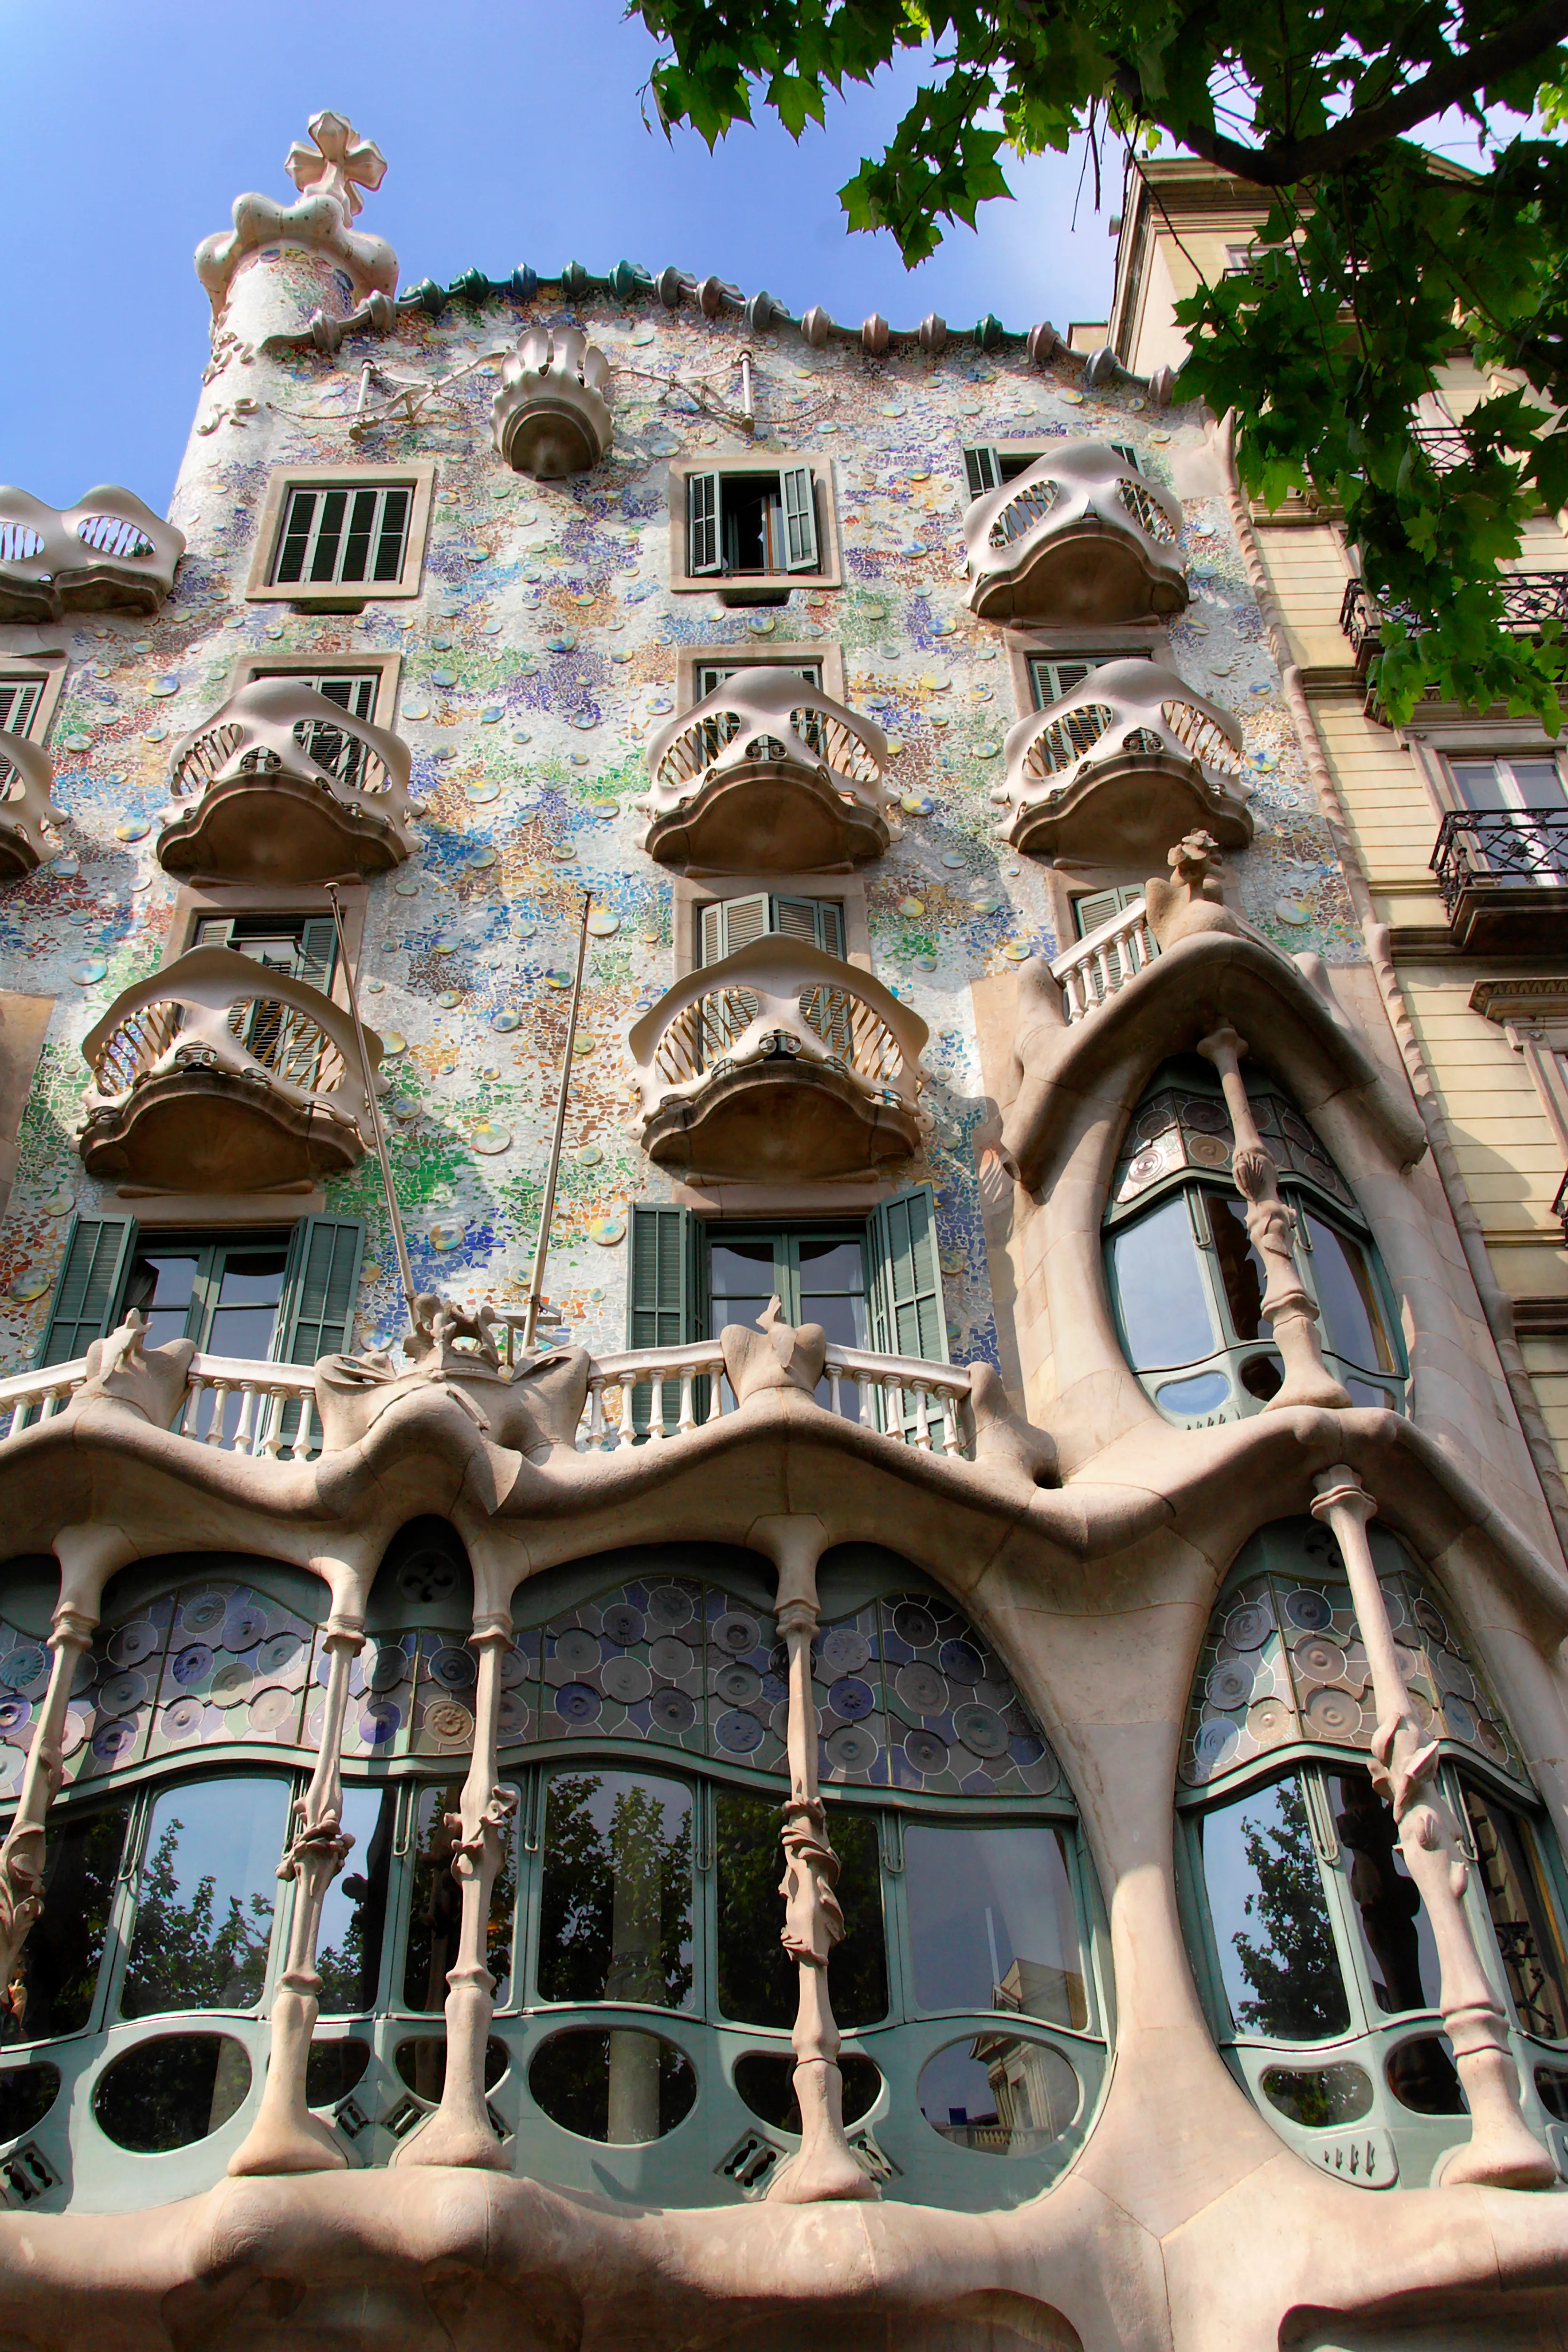 The Most Beautiful Art Nouveau Buildings Around the World